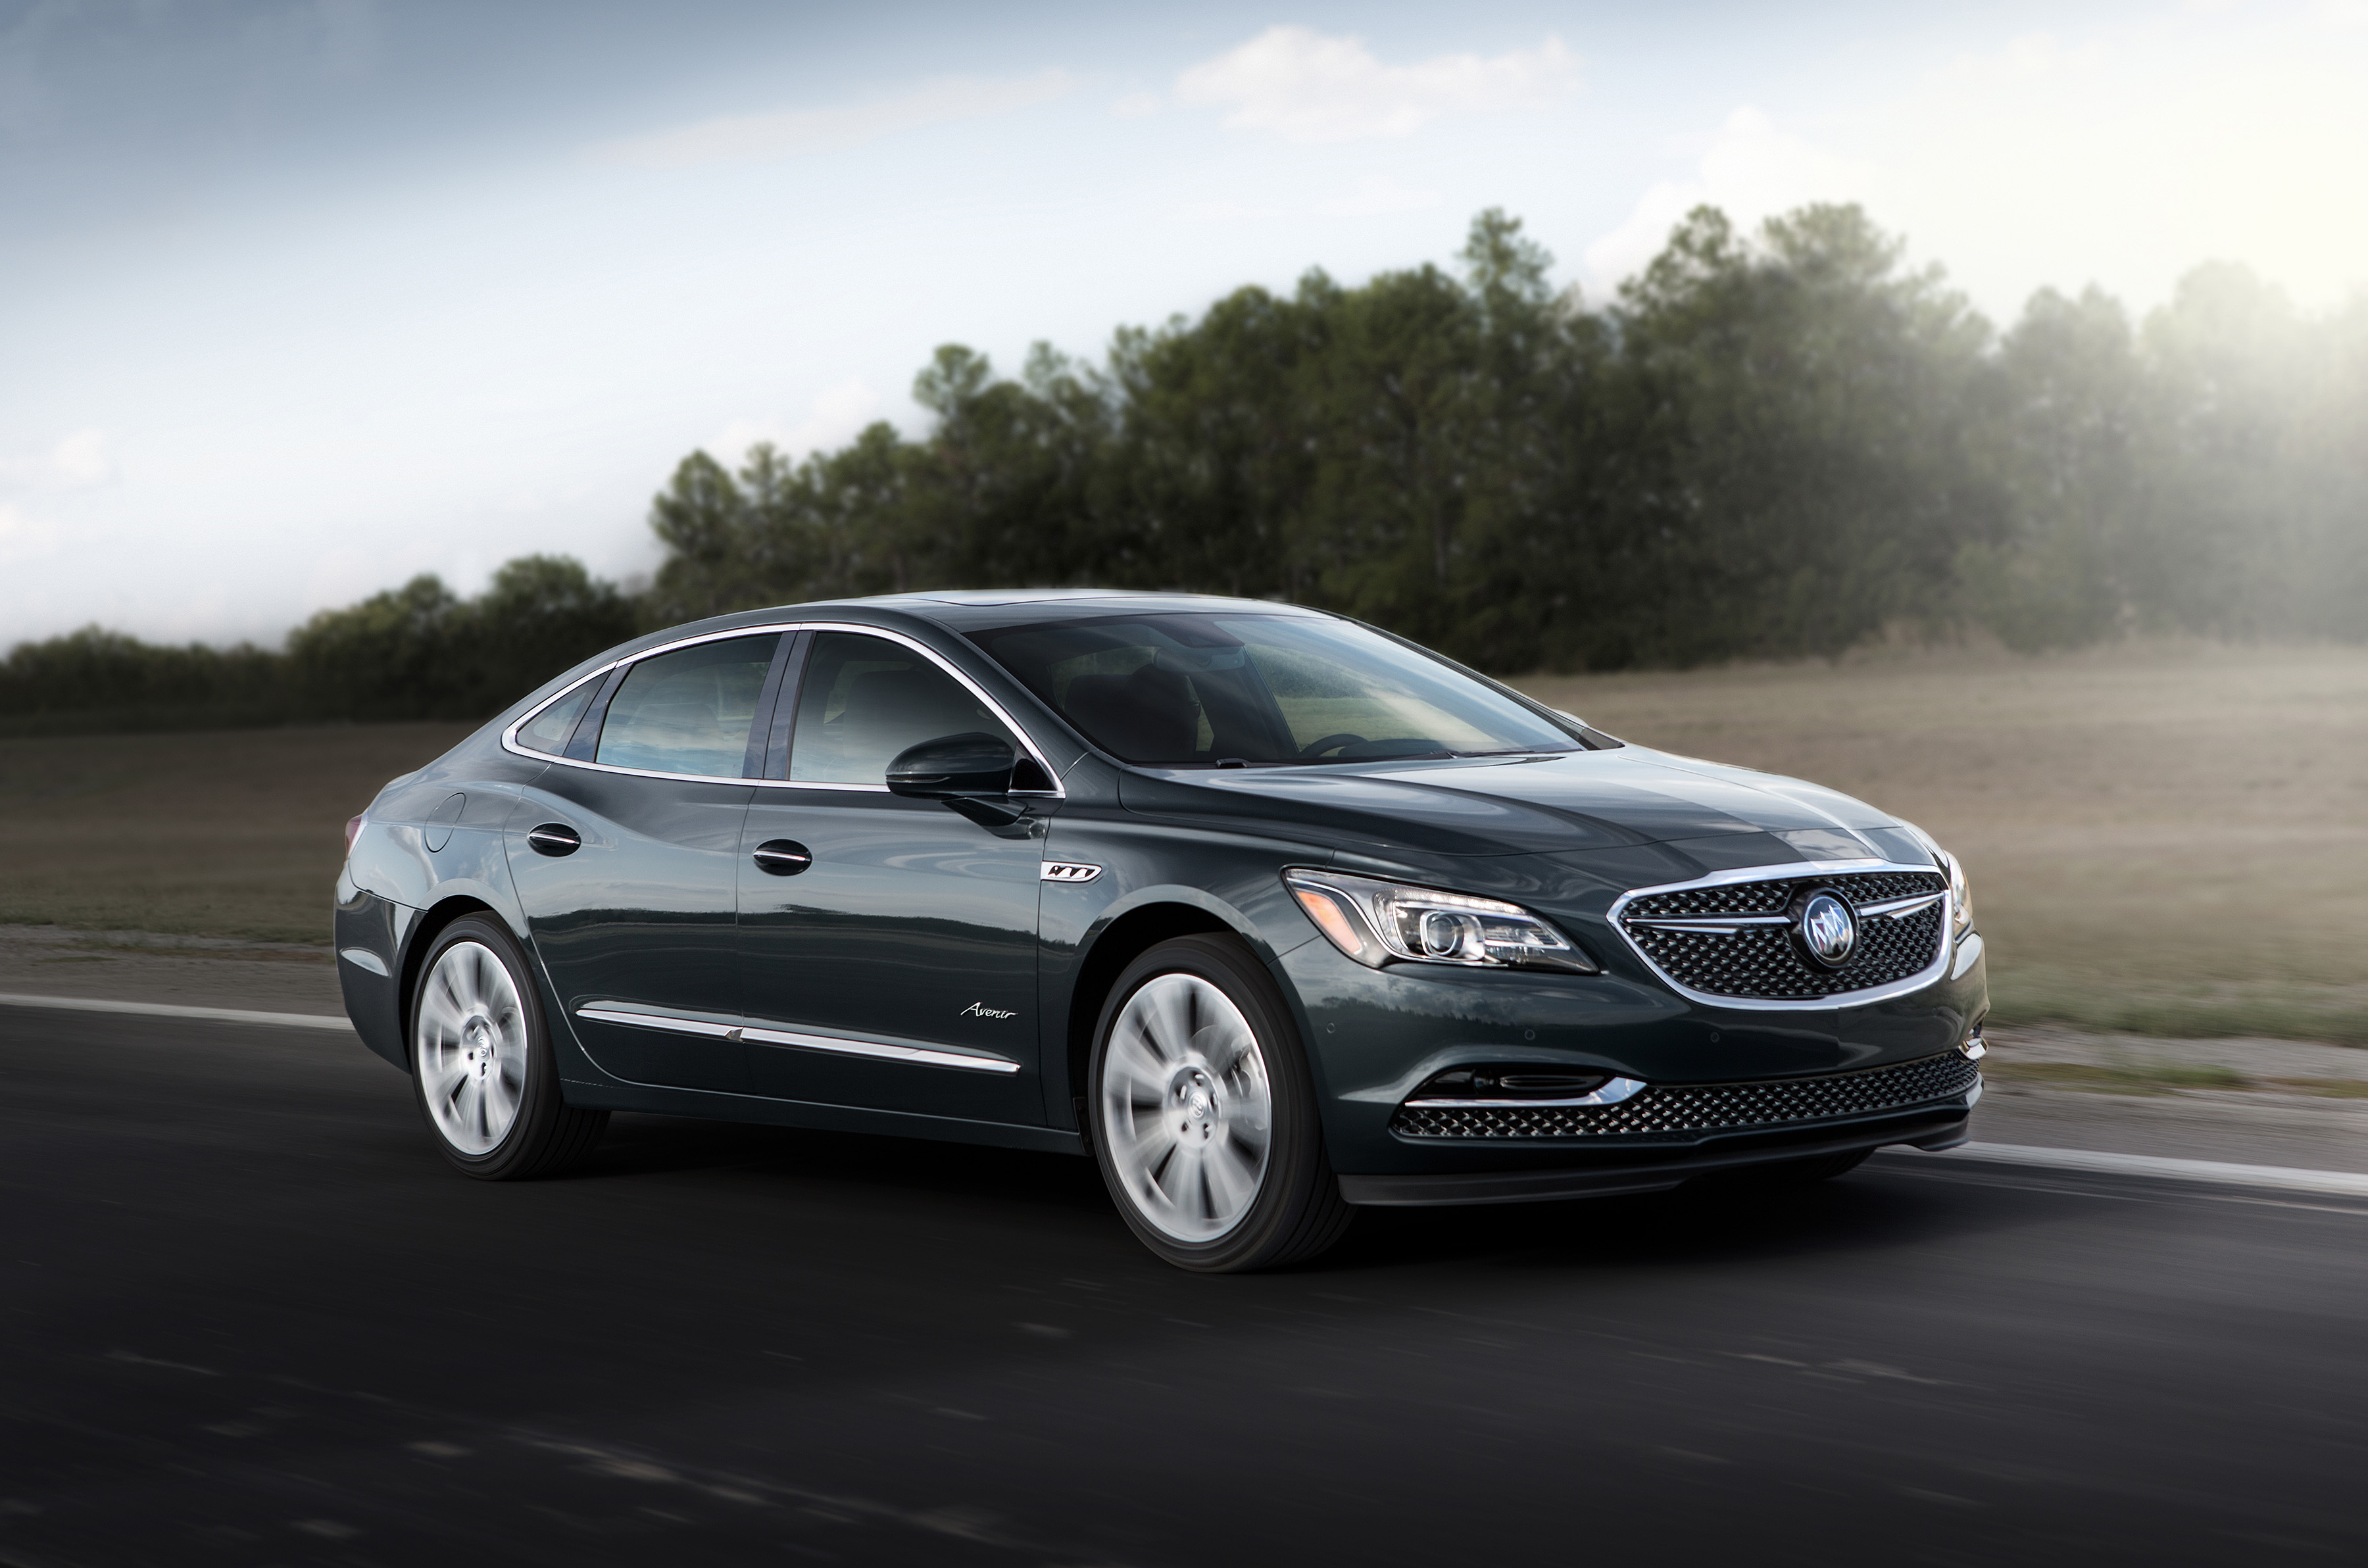 us media driven envision define updates buick pages news en content feb detail customer